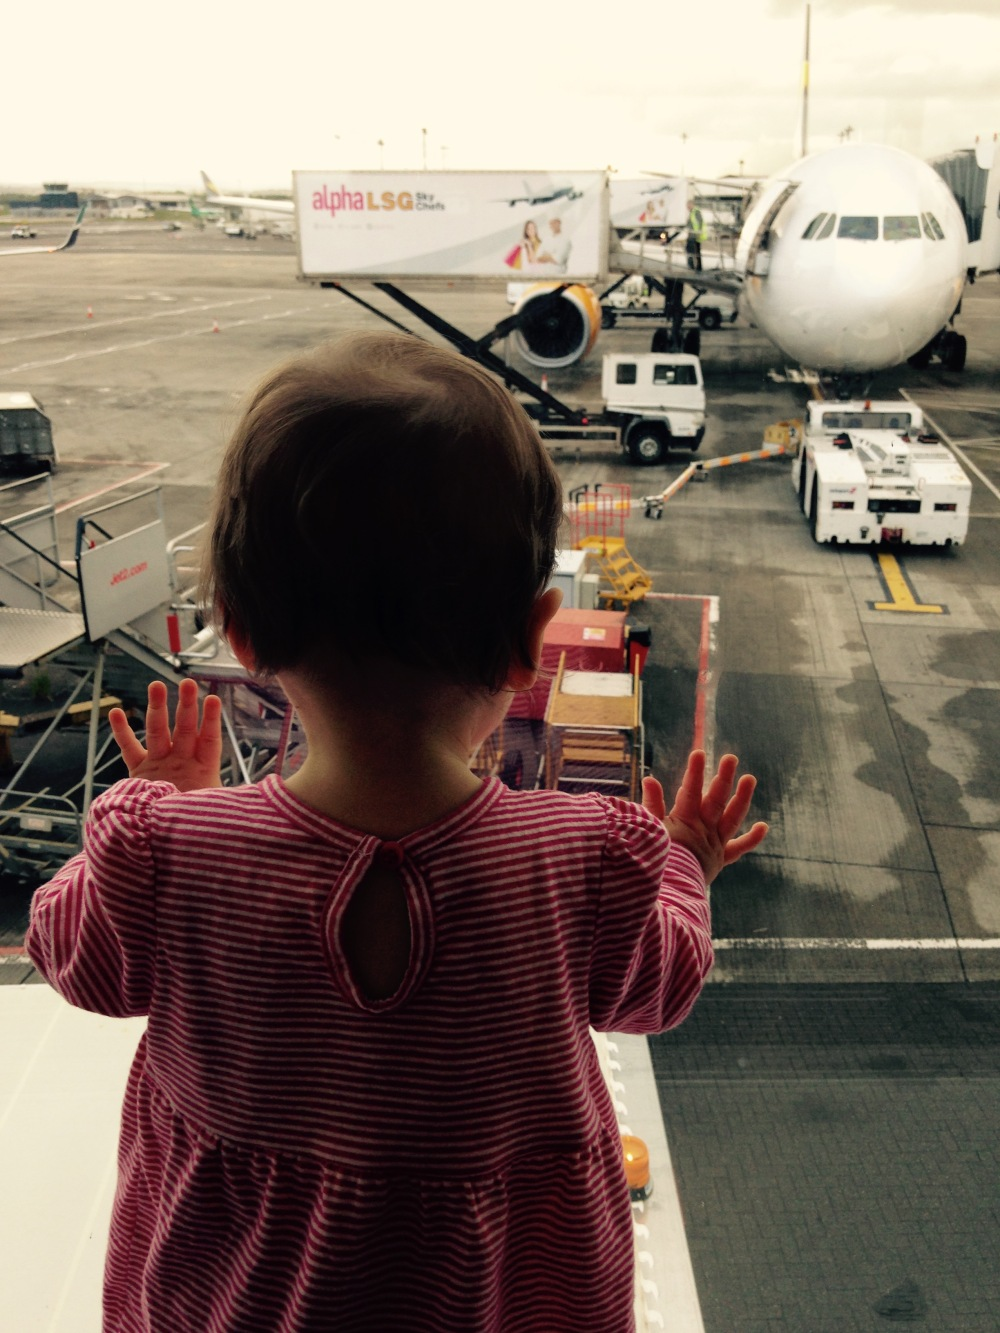 The Popple looking out the window at the airport